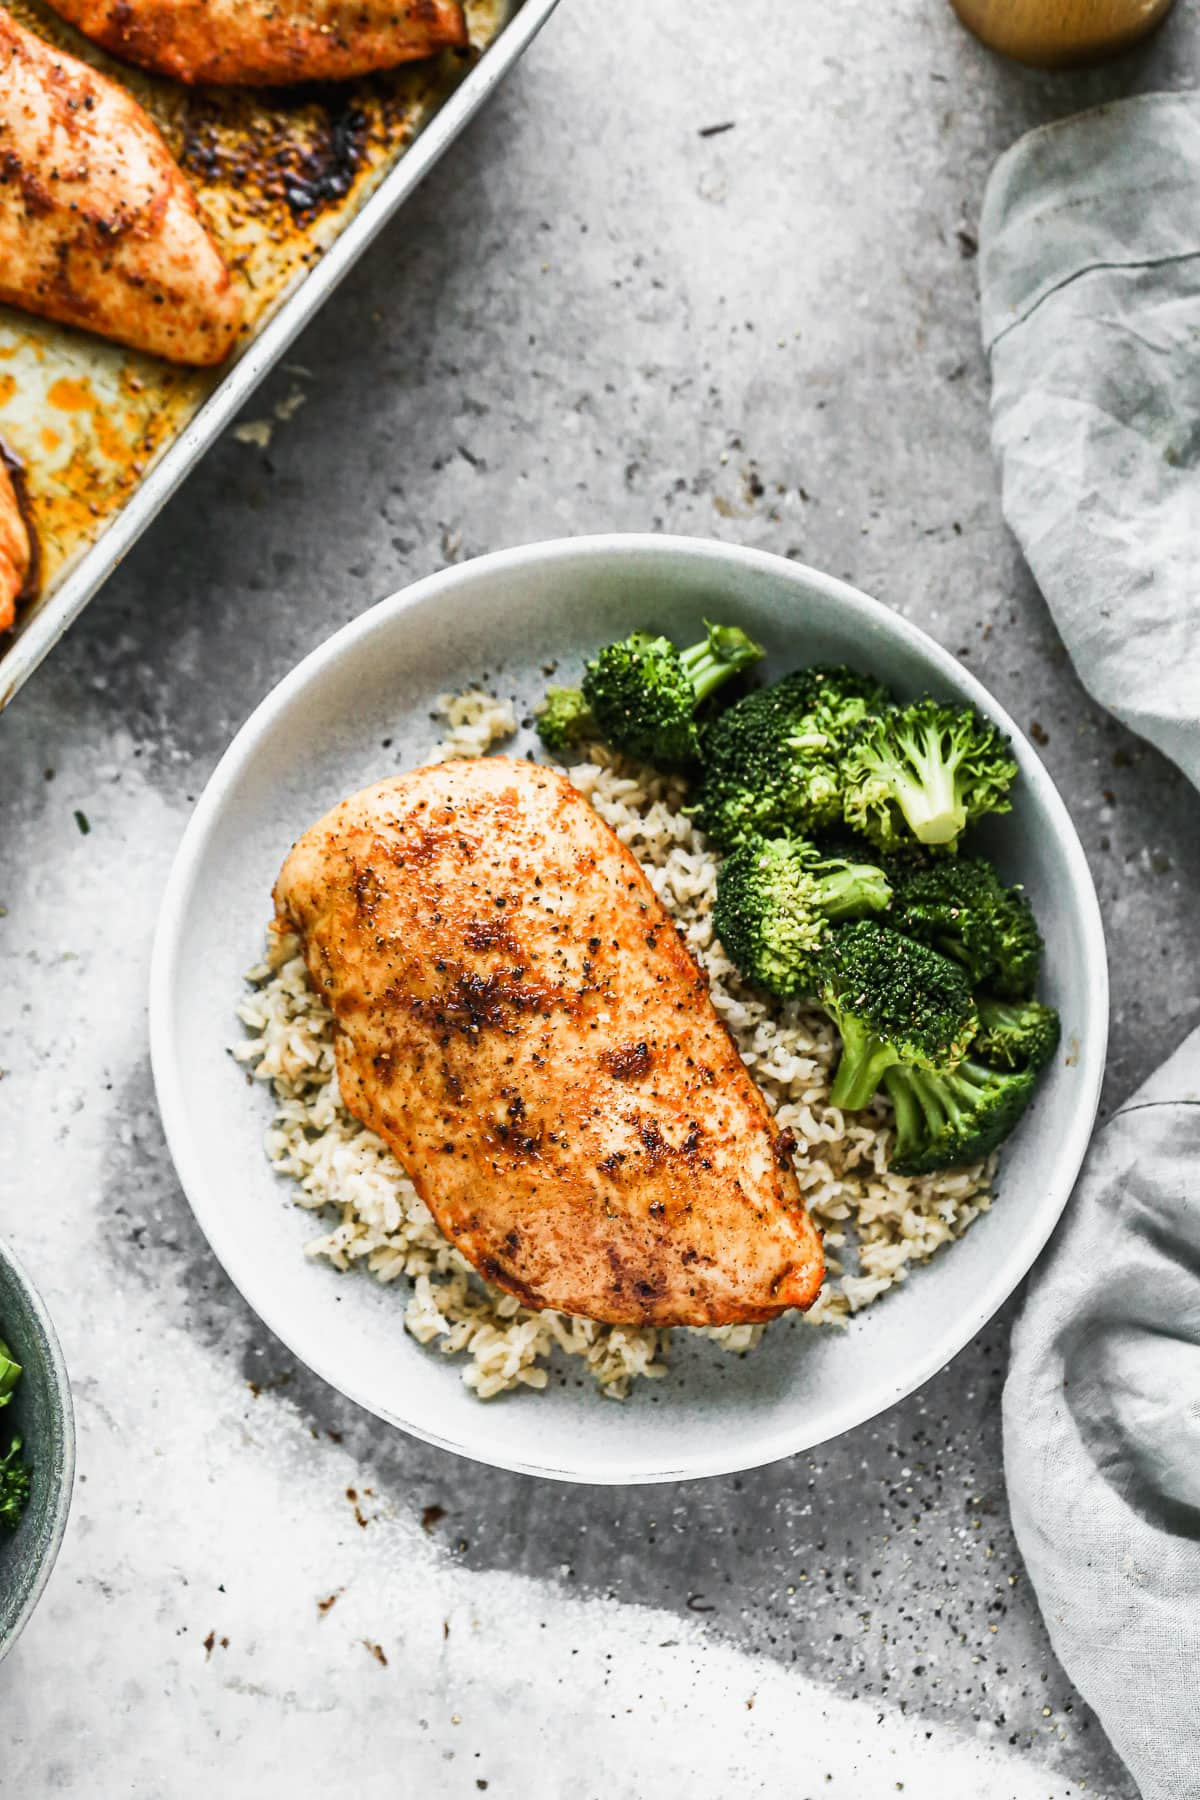 Oven roasted chicken breast in a bowl with rice and broccoli